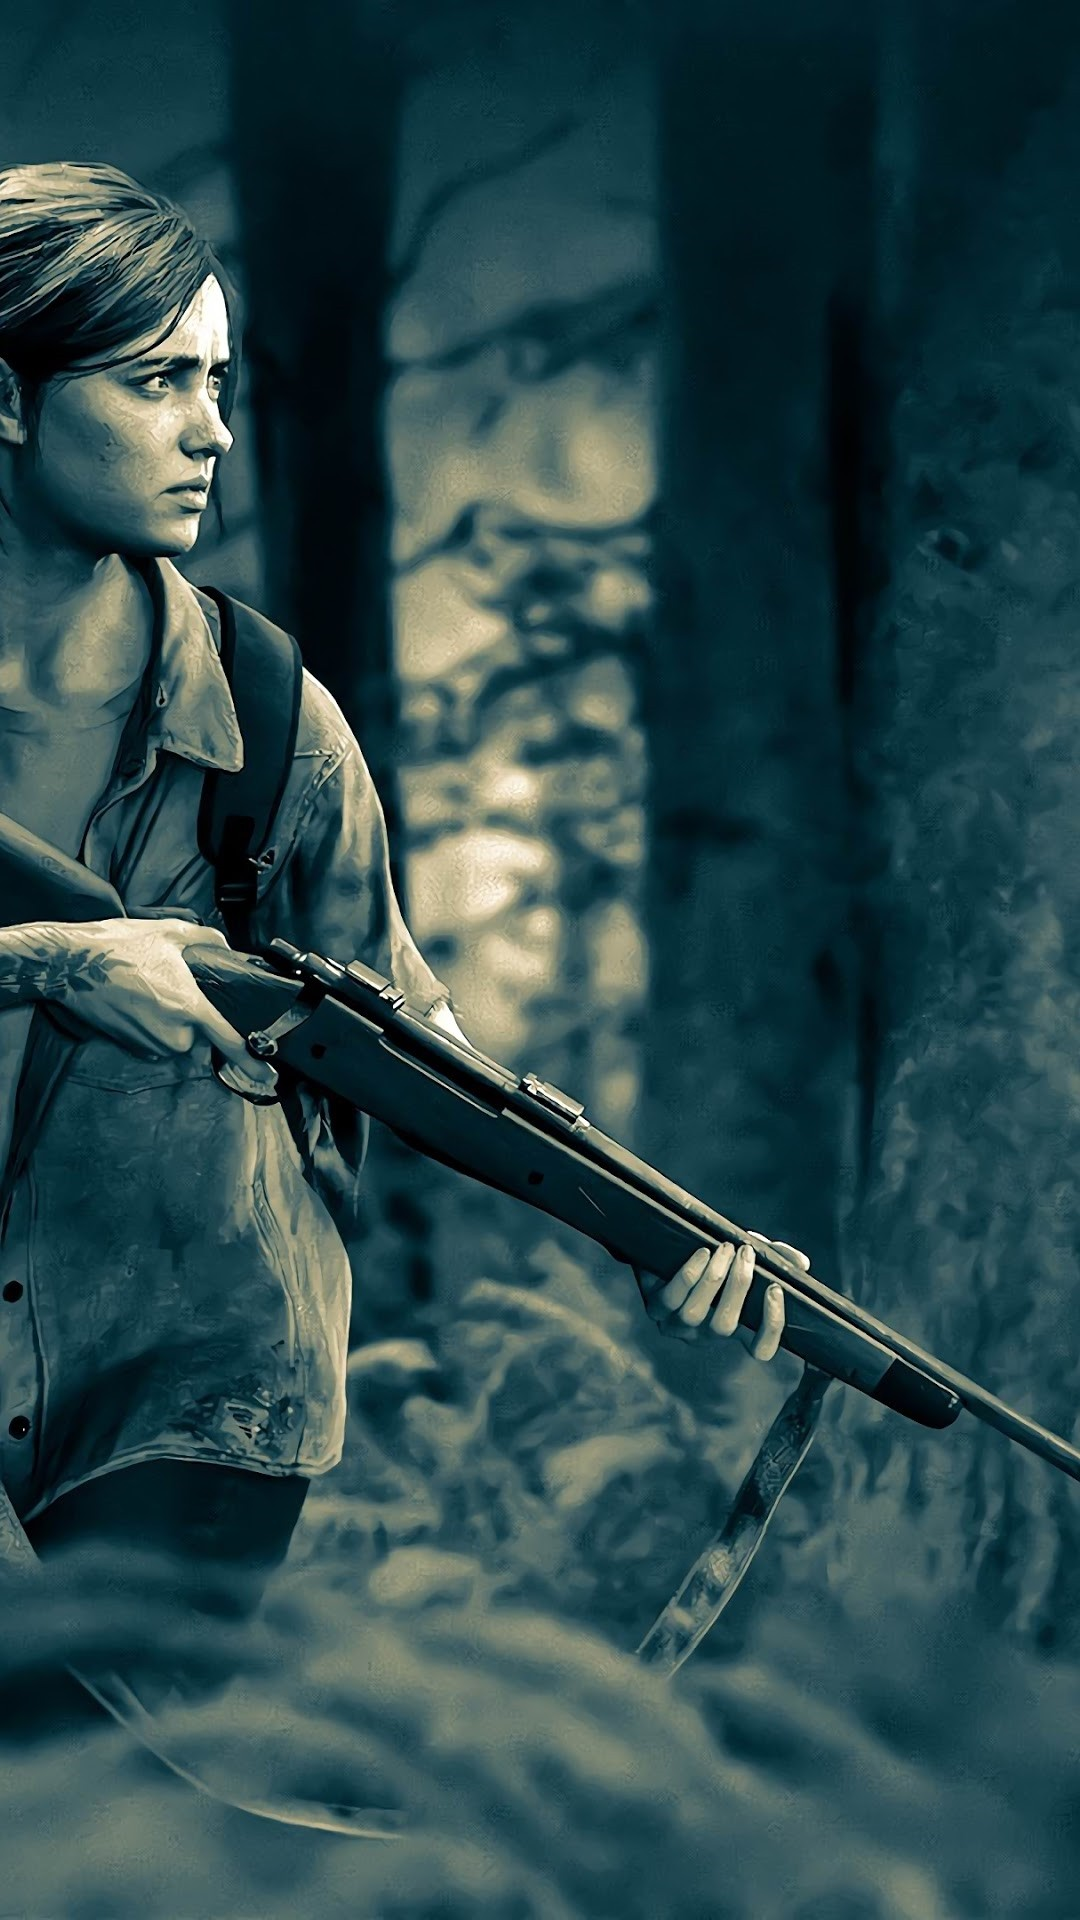 The Last Of Us free wallpaper for android